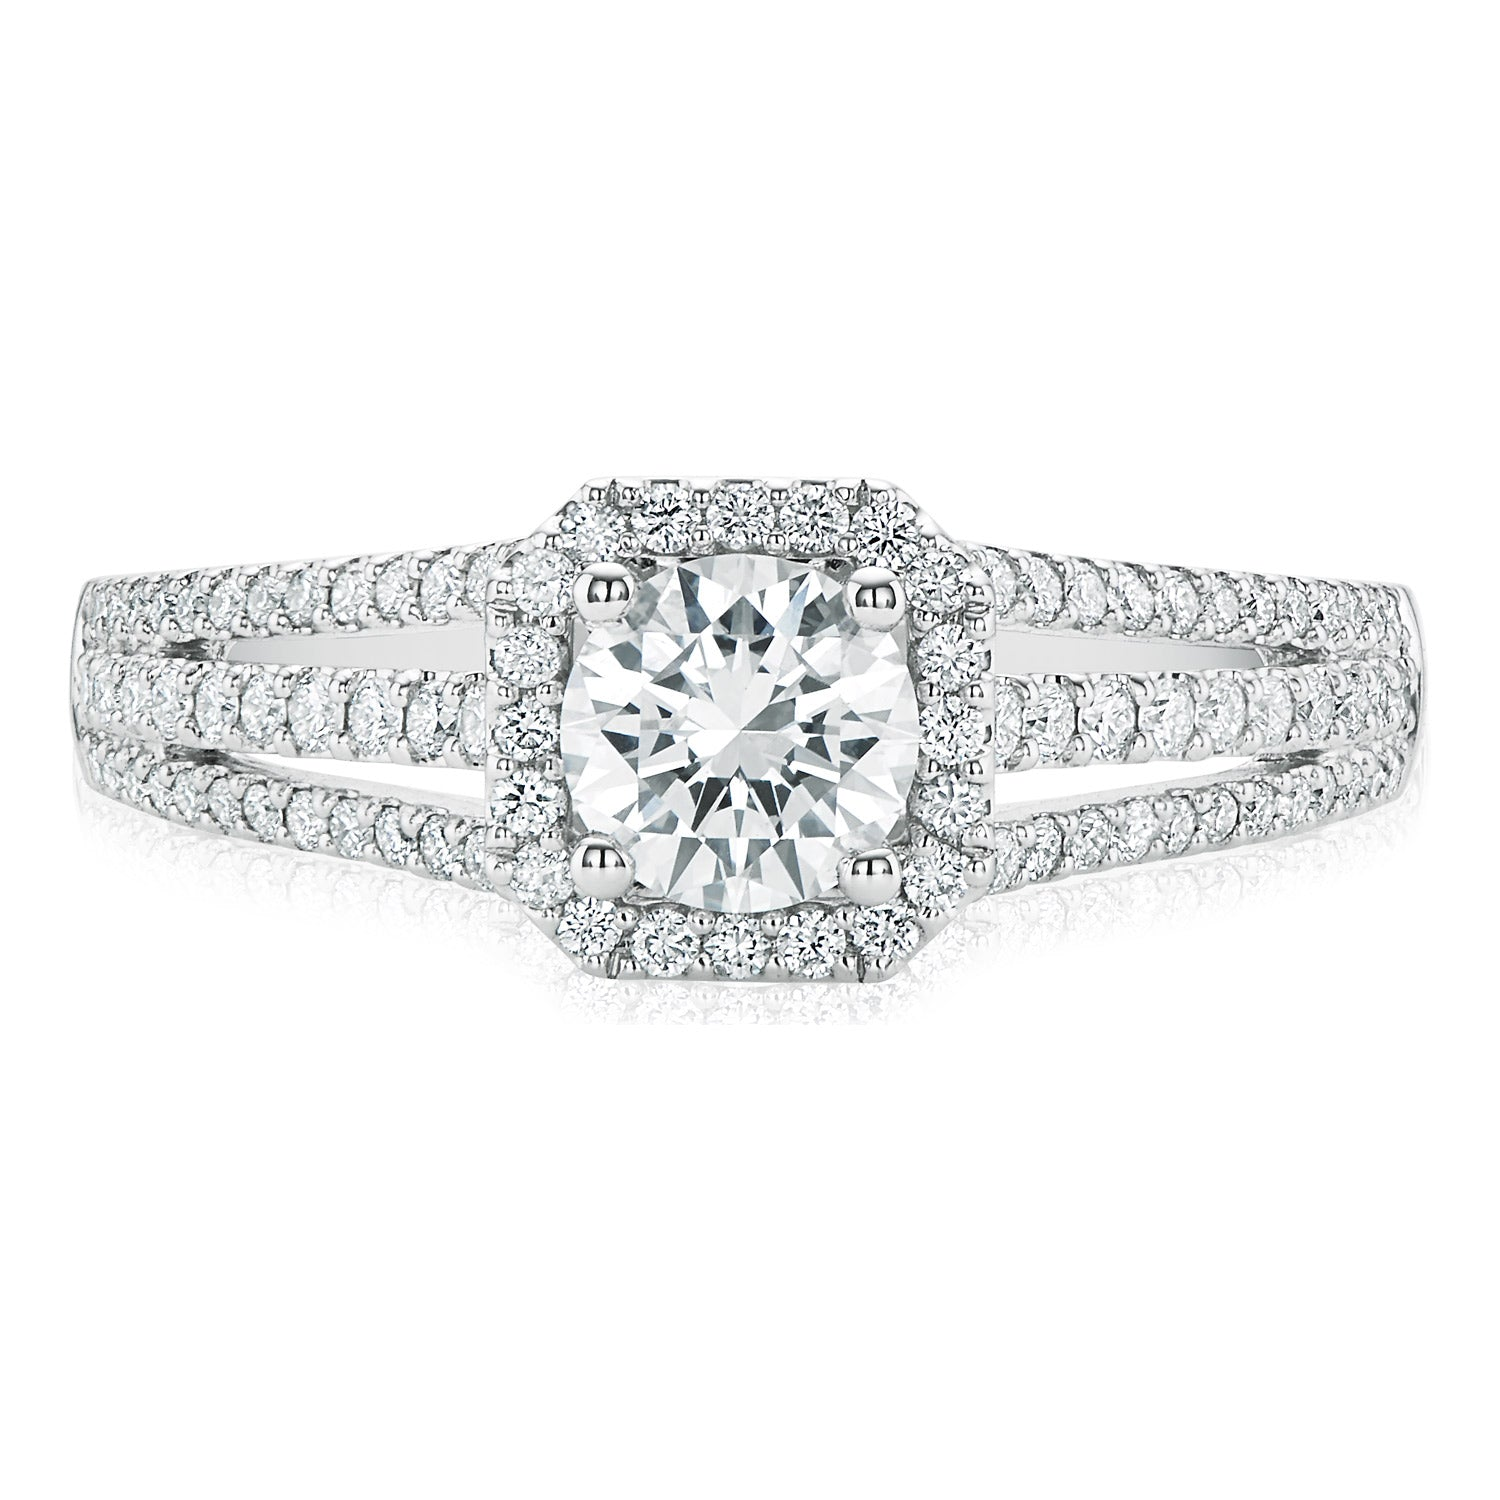 Vera Wang Love 18ct White Gold Round Brilliant Cut with 1 CARAT tw of Diamonds